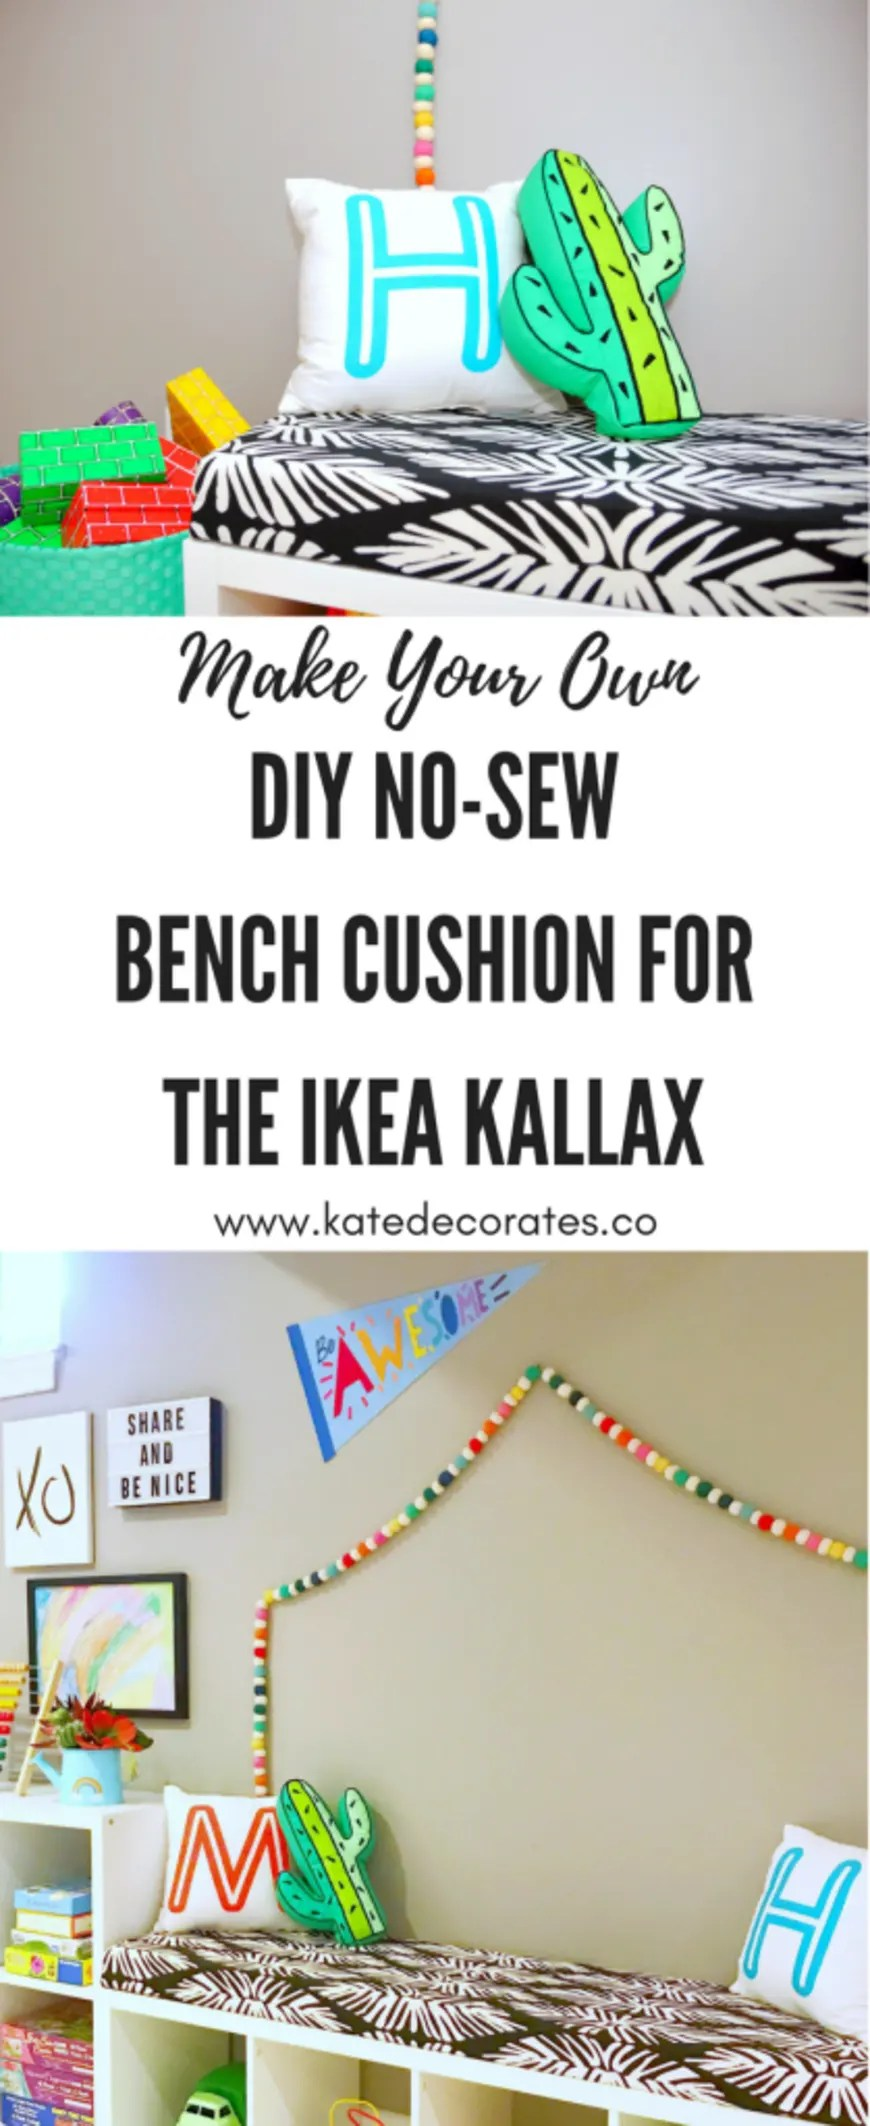 This IKEA Kallax hack is SUCH a great idea for a kids' room!